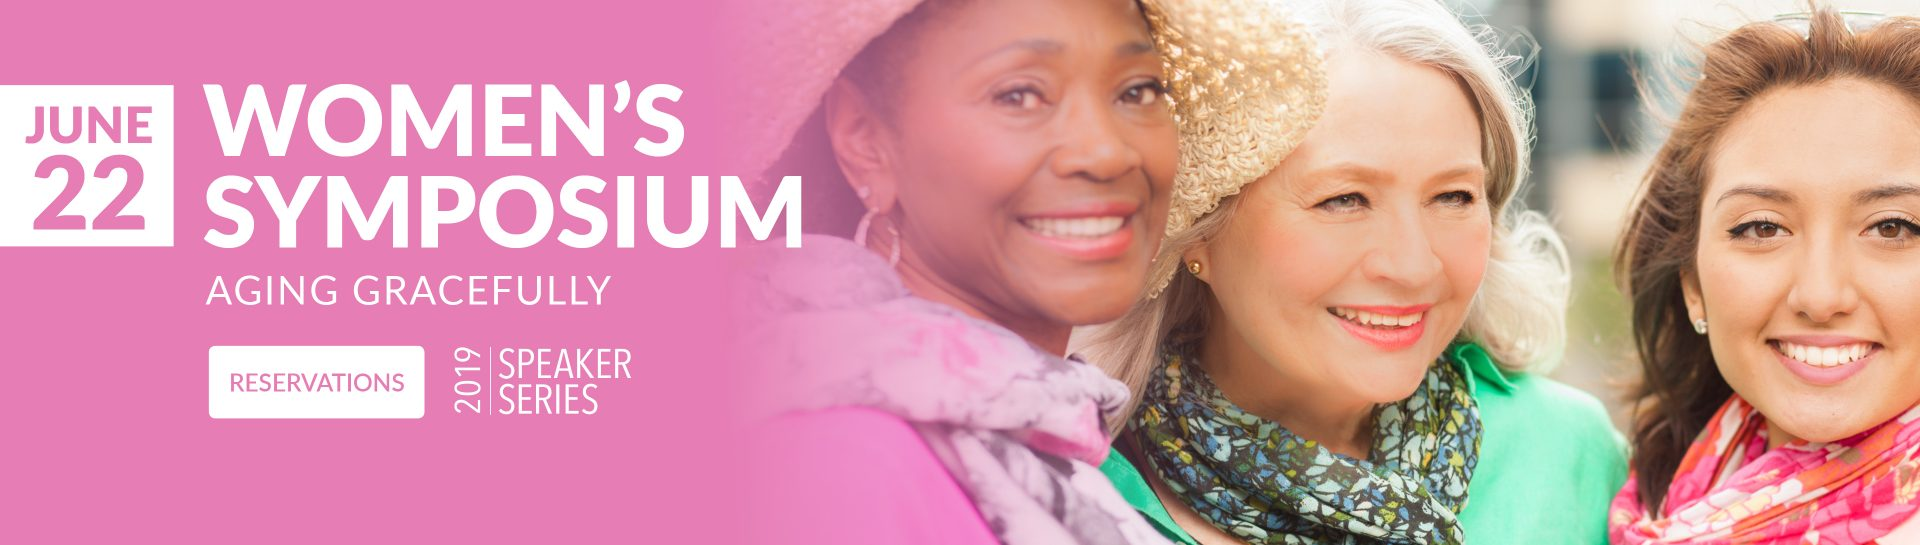 Make reservations for the Women's Symposium on June 22